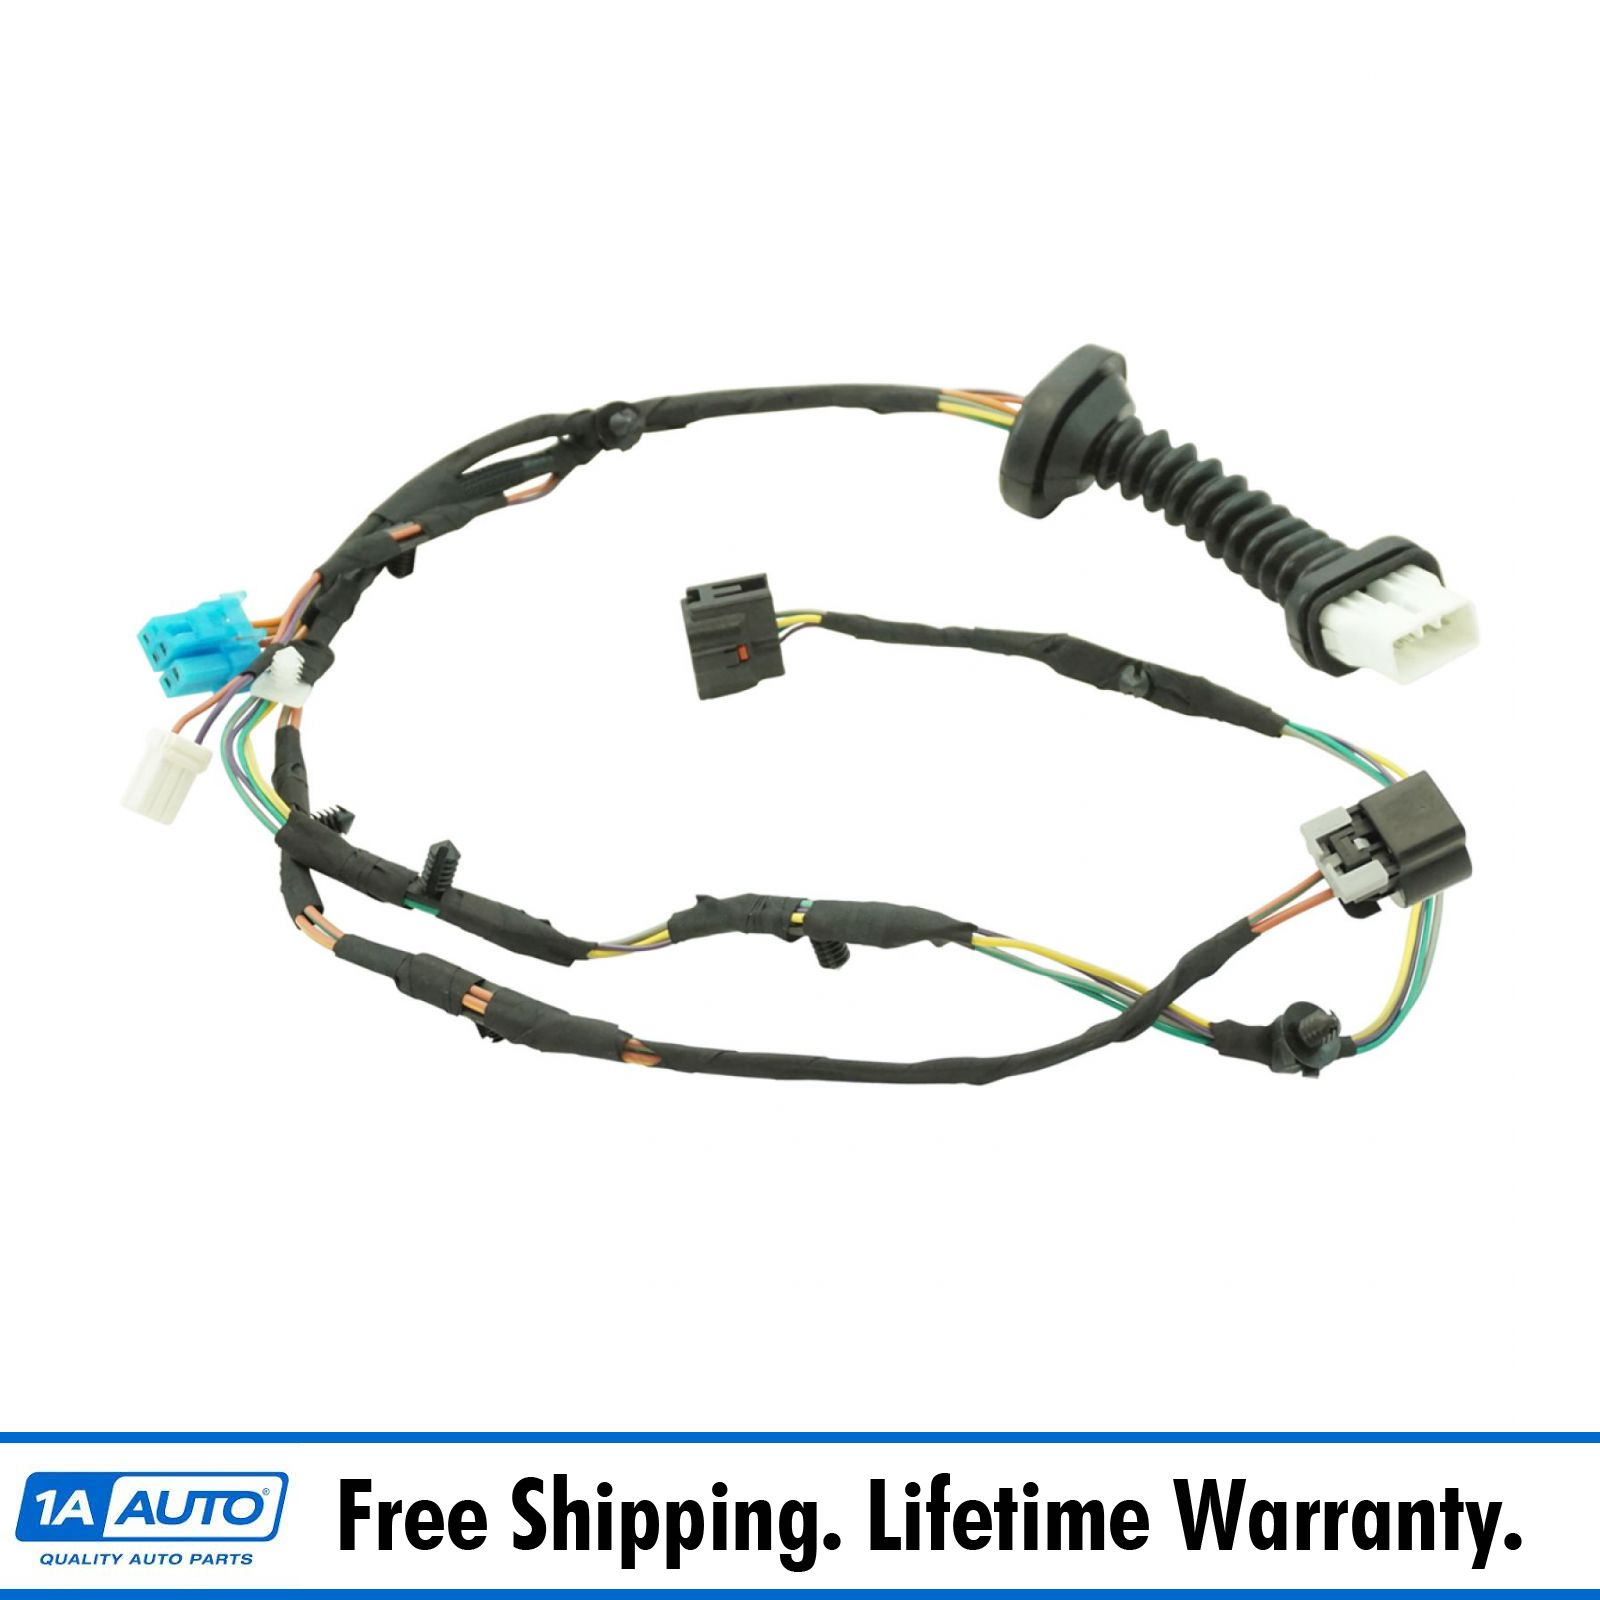 Dorman 645-506 Rear Door Wiring Harness for 04-05 Dodge Ram Pickup Truck  New | eBayeBay